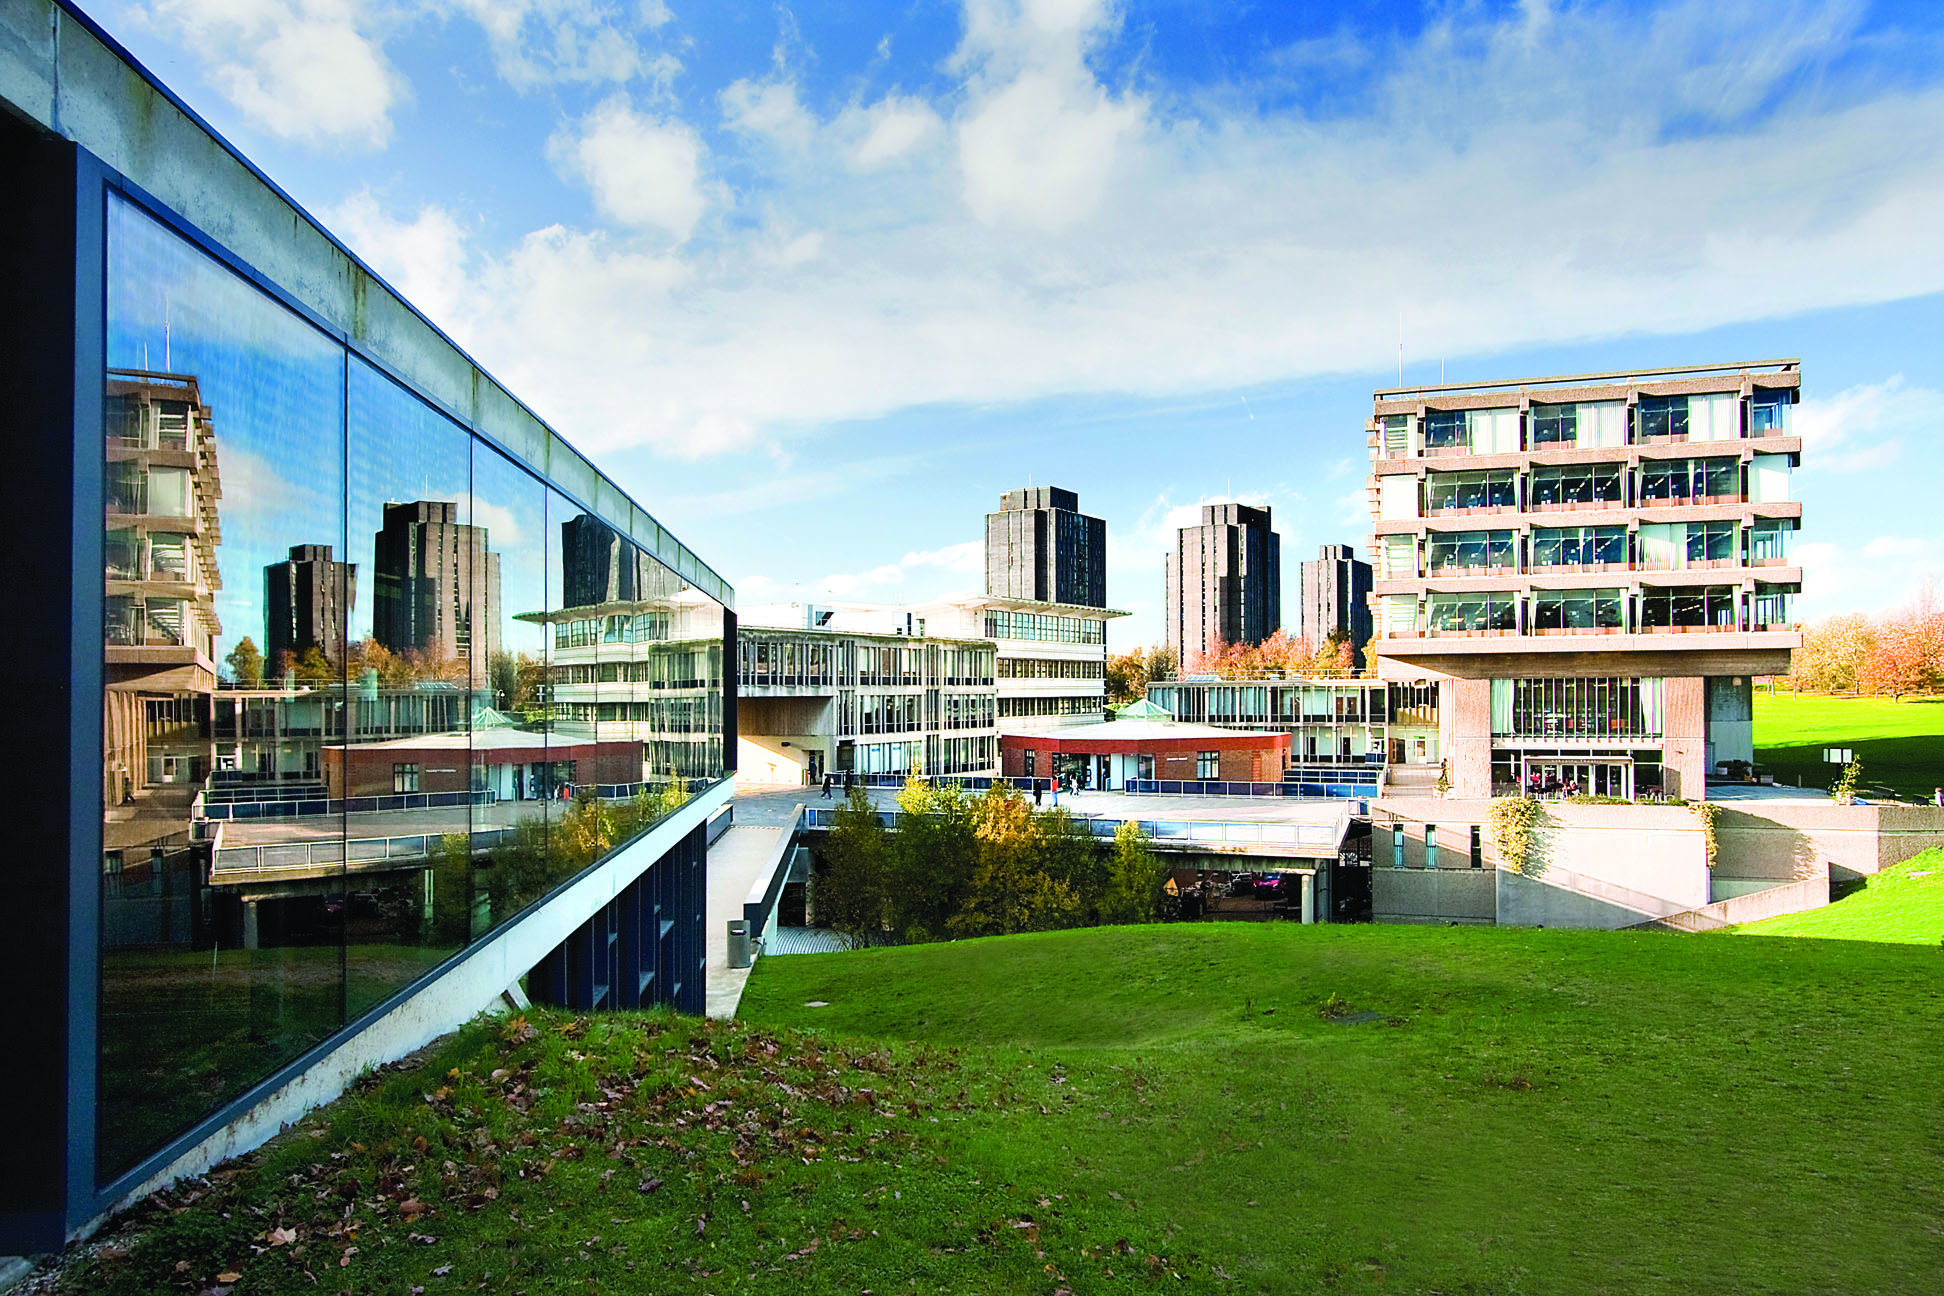 University of Essex - Essex is proud to be Gold rated in the Teaching Excellence Framework 2017 and ranked in the top 30 in The Times and The Sunday Times Good University Guide. They are also in the top 25 for research quality in the Good University Guide and top 15 for the sixth year running in The National Student Survey for overall student satisfaction.